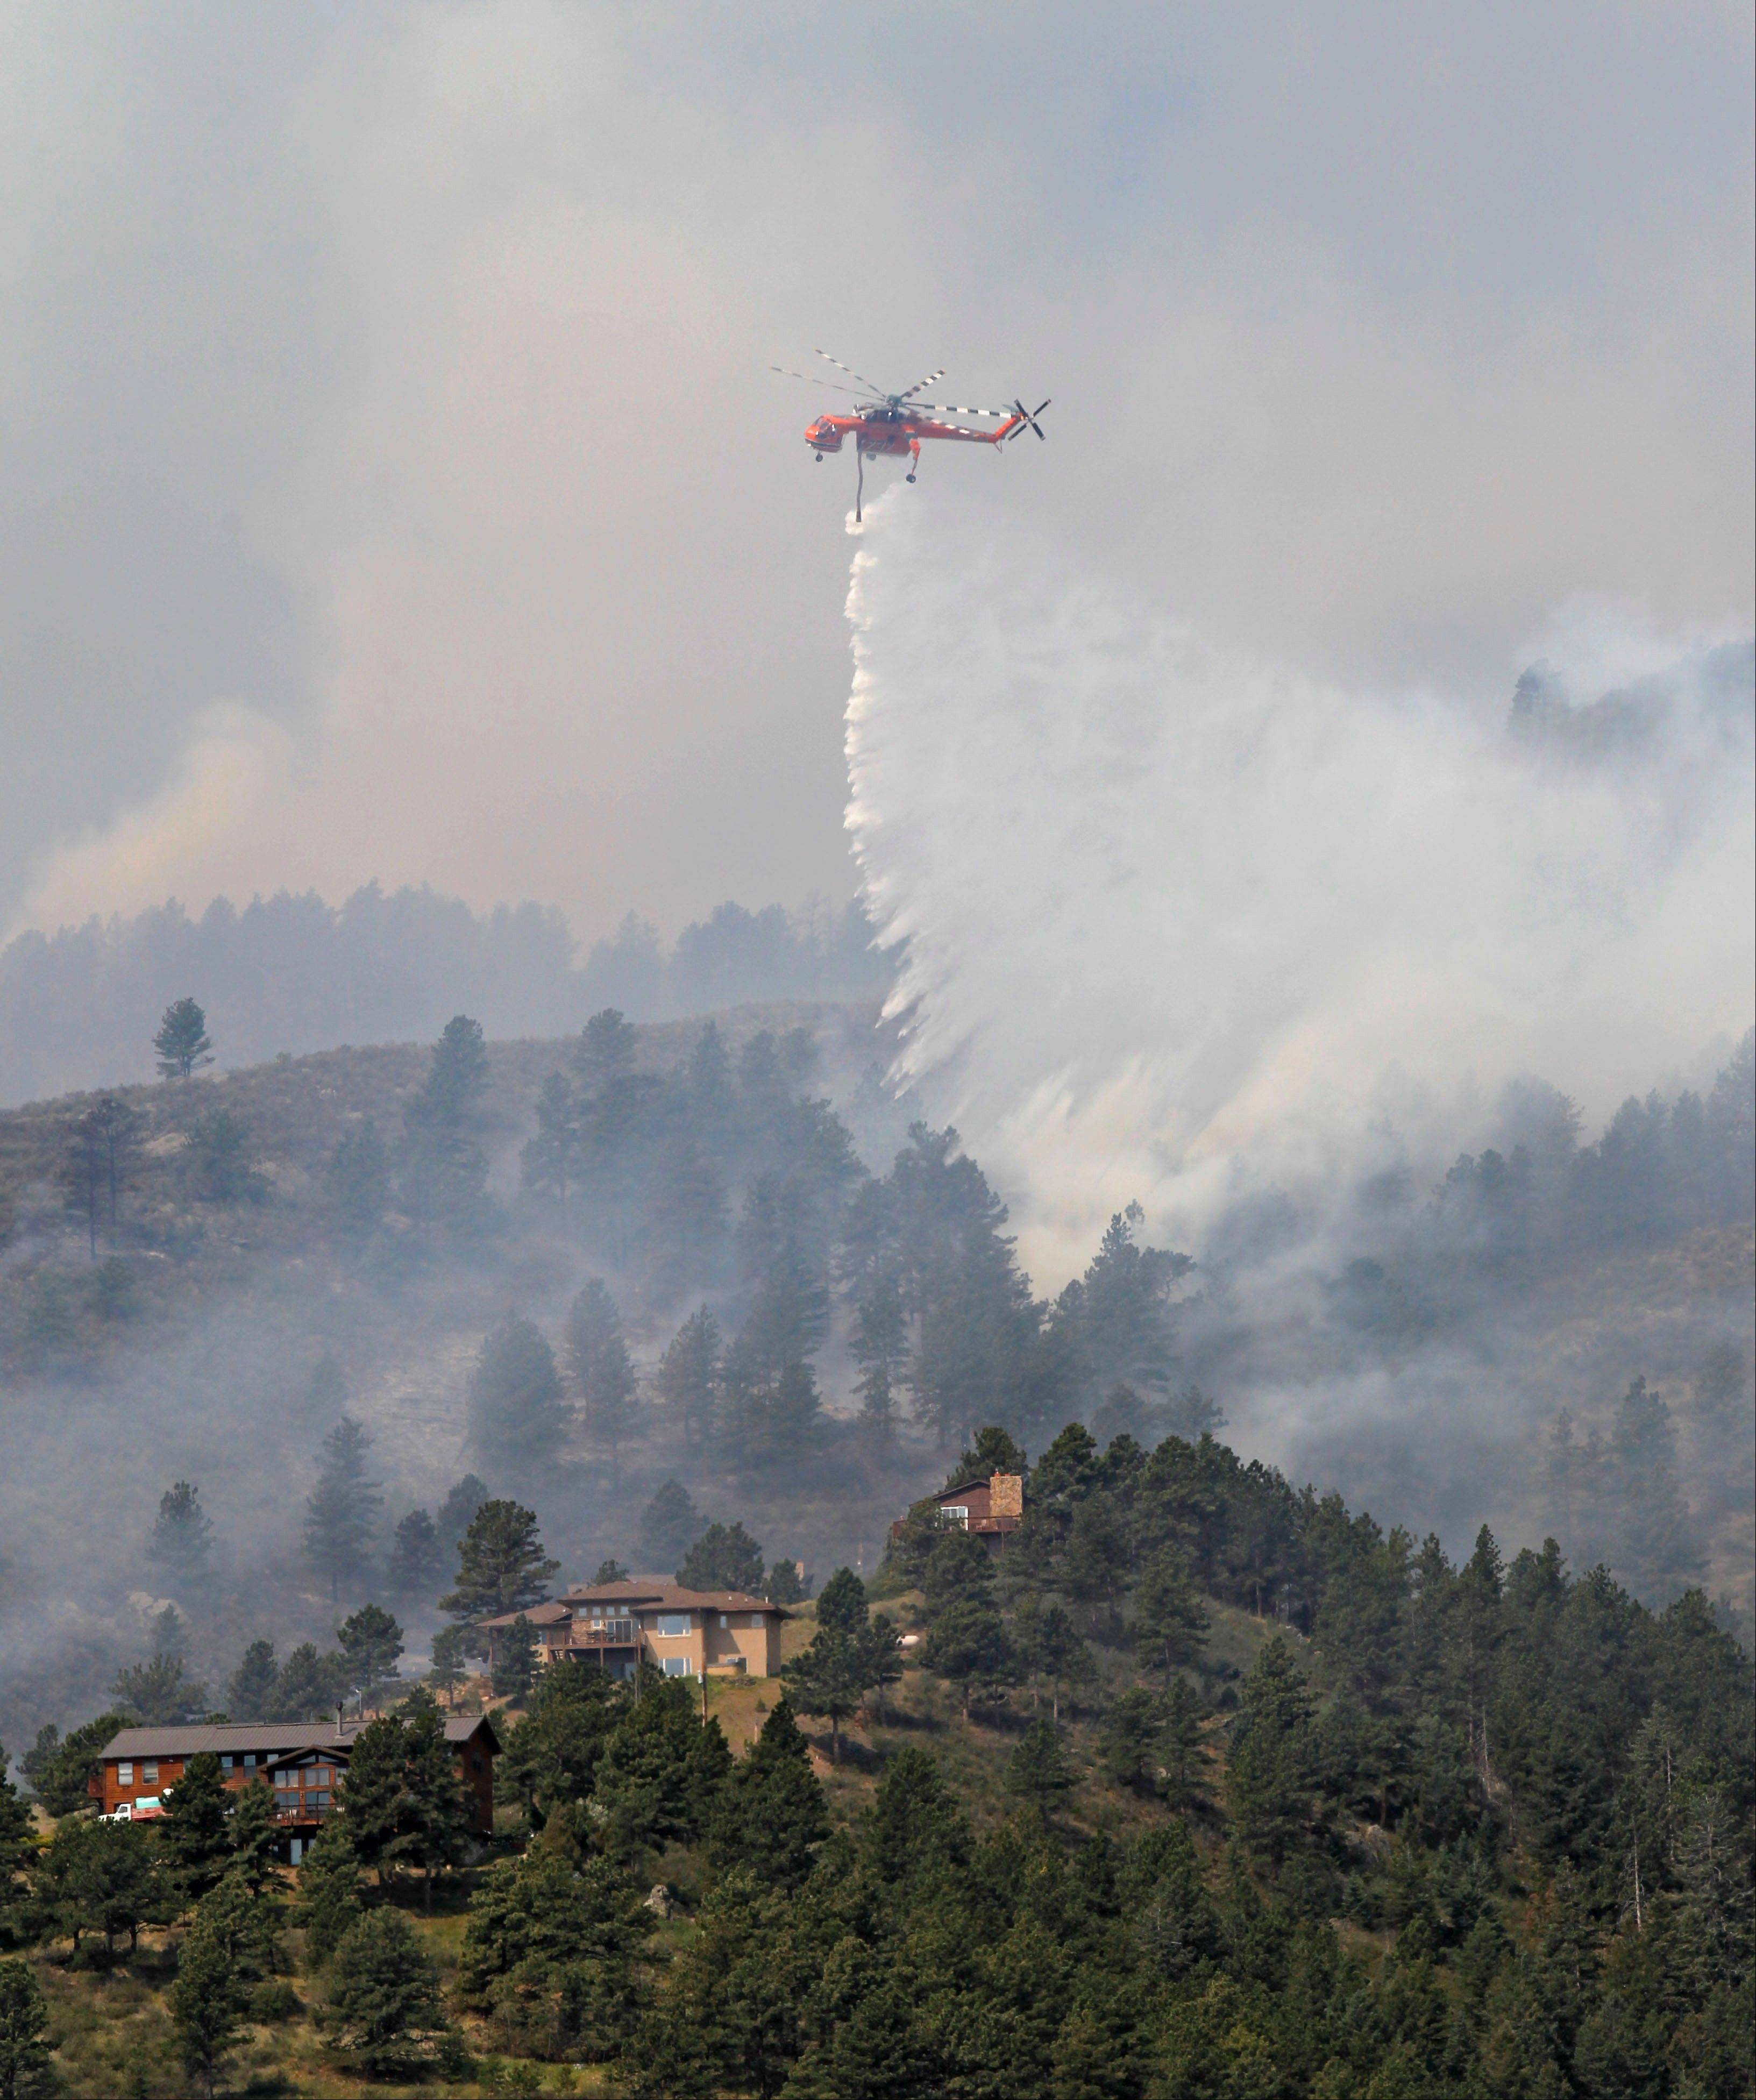 A helicopter drops water on trees burning behind homes on the High Park wildfire near Fort Collins, Colo., on Monday, June 11, 2012. The wildfire is burning out of control in northern Colorado, while an unchecked blaze choked a small community in southern New Mexico as authorities in both regions battled fires Monday.